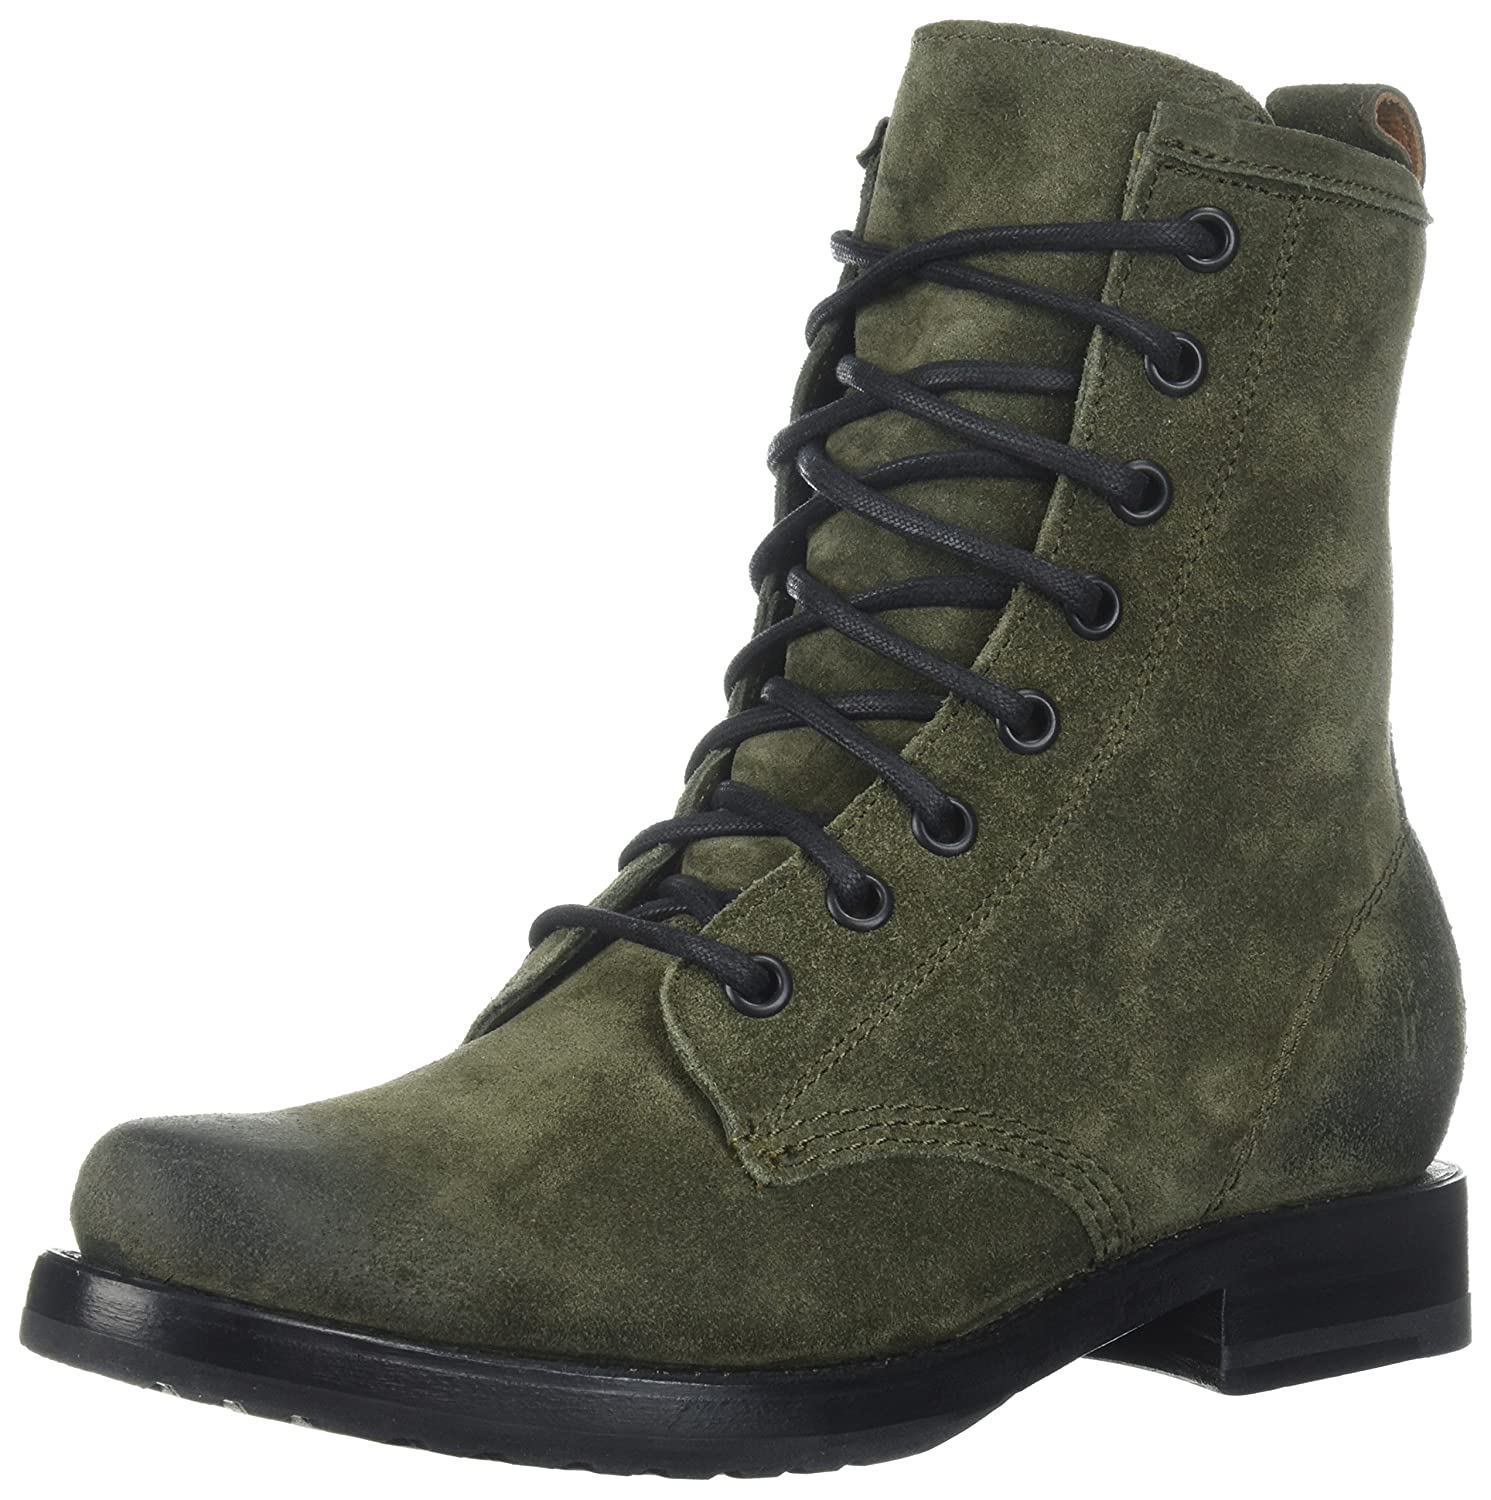 FRYE Women's Veronica Combat Boot B01NBR26A9 6.5 B(M) US|Forest Soft Oiled Suede